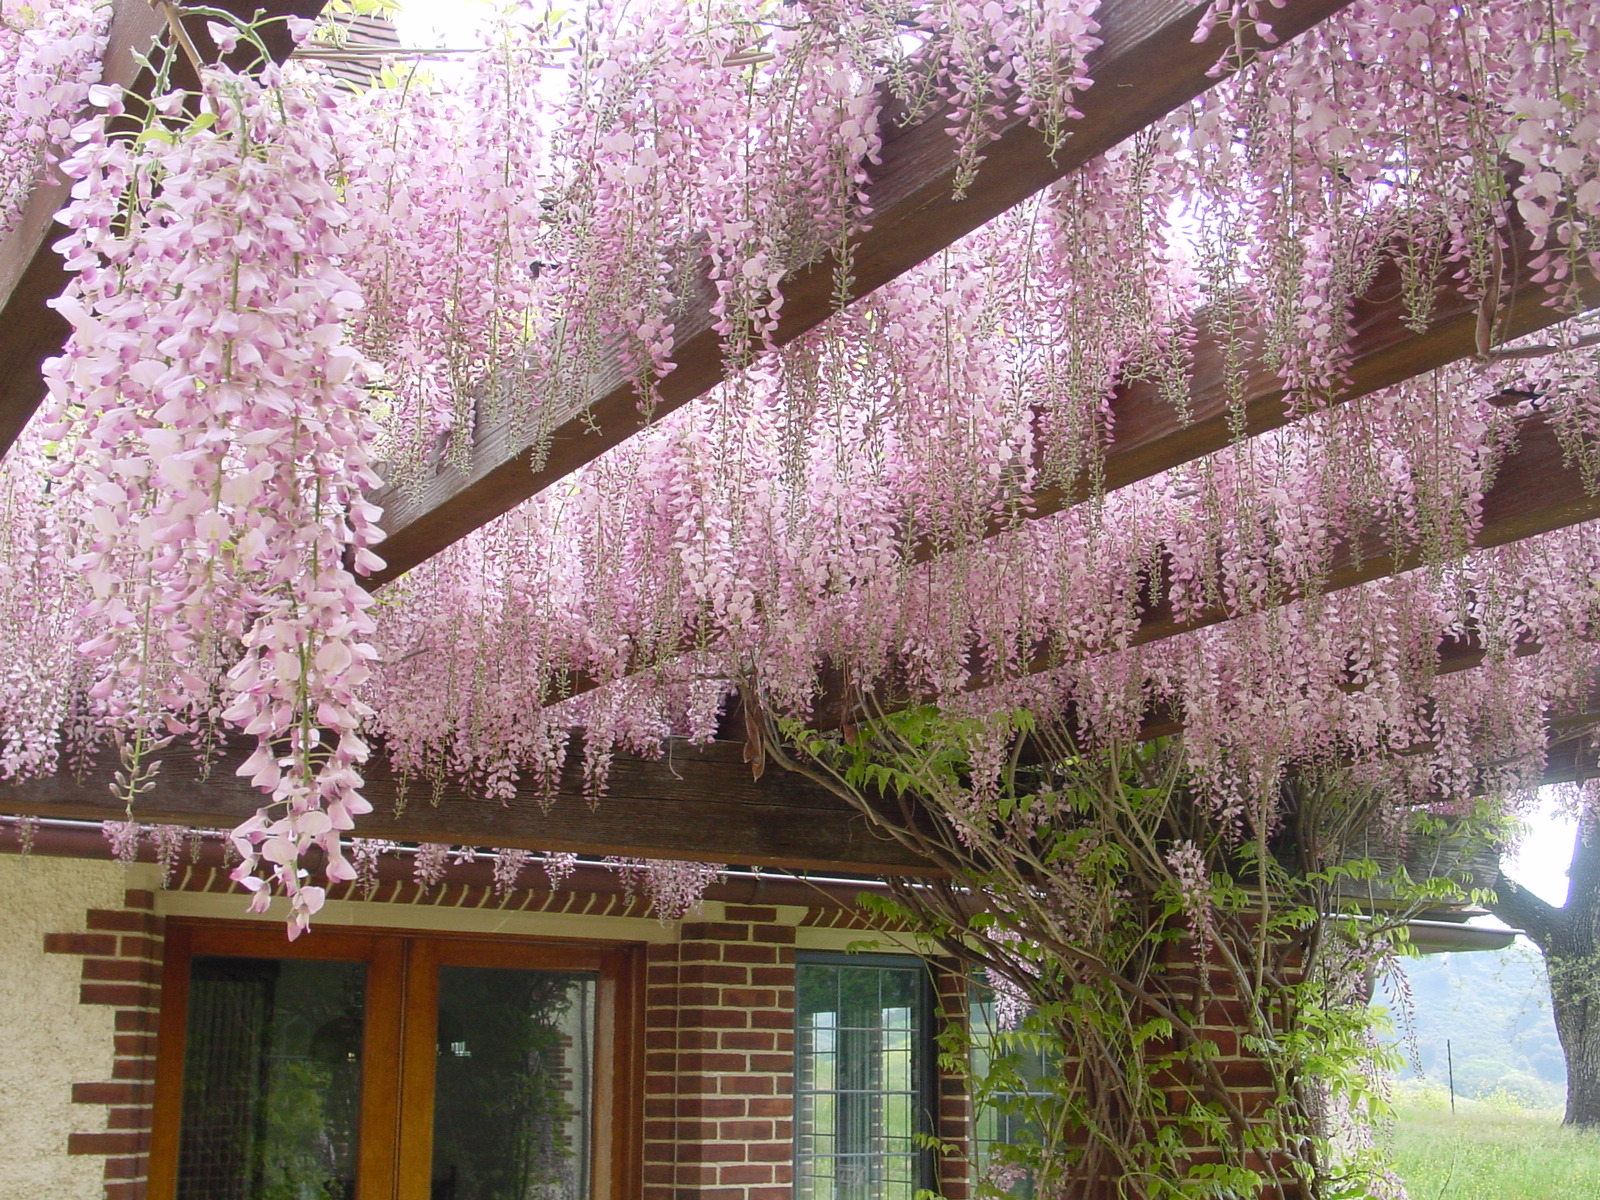 Pink wisteria on the Breakfast Terrace Pergola.